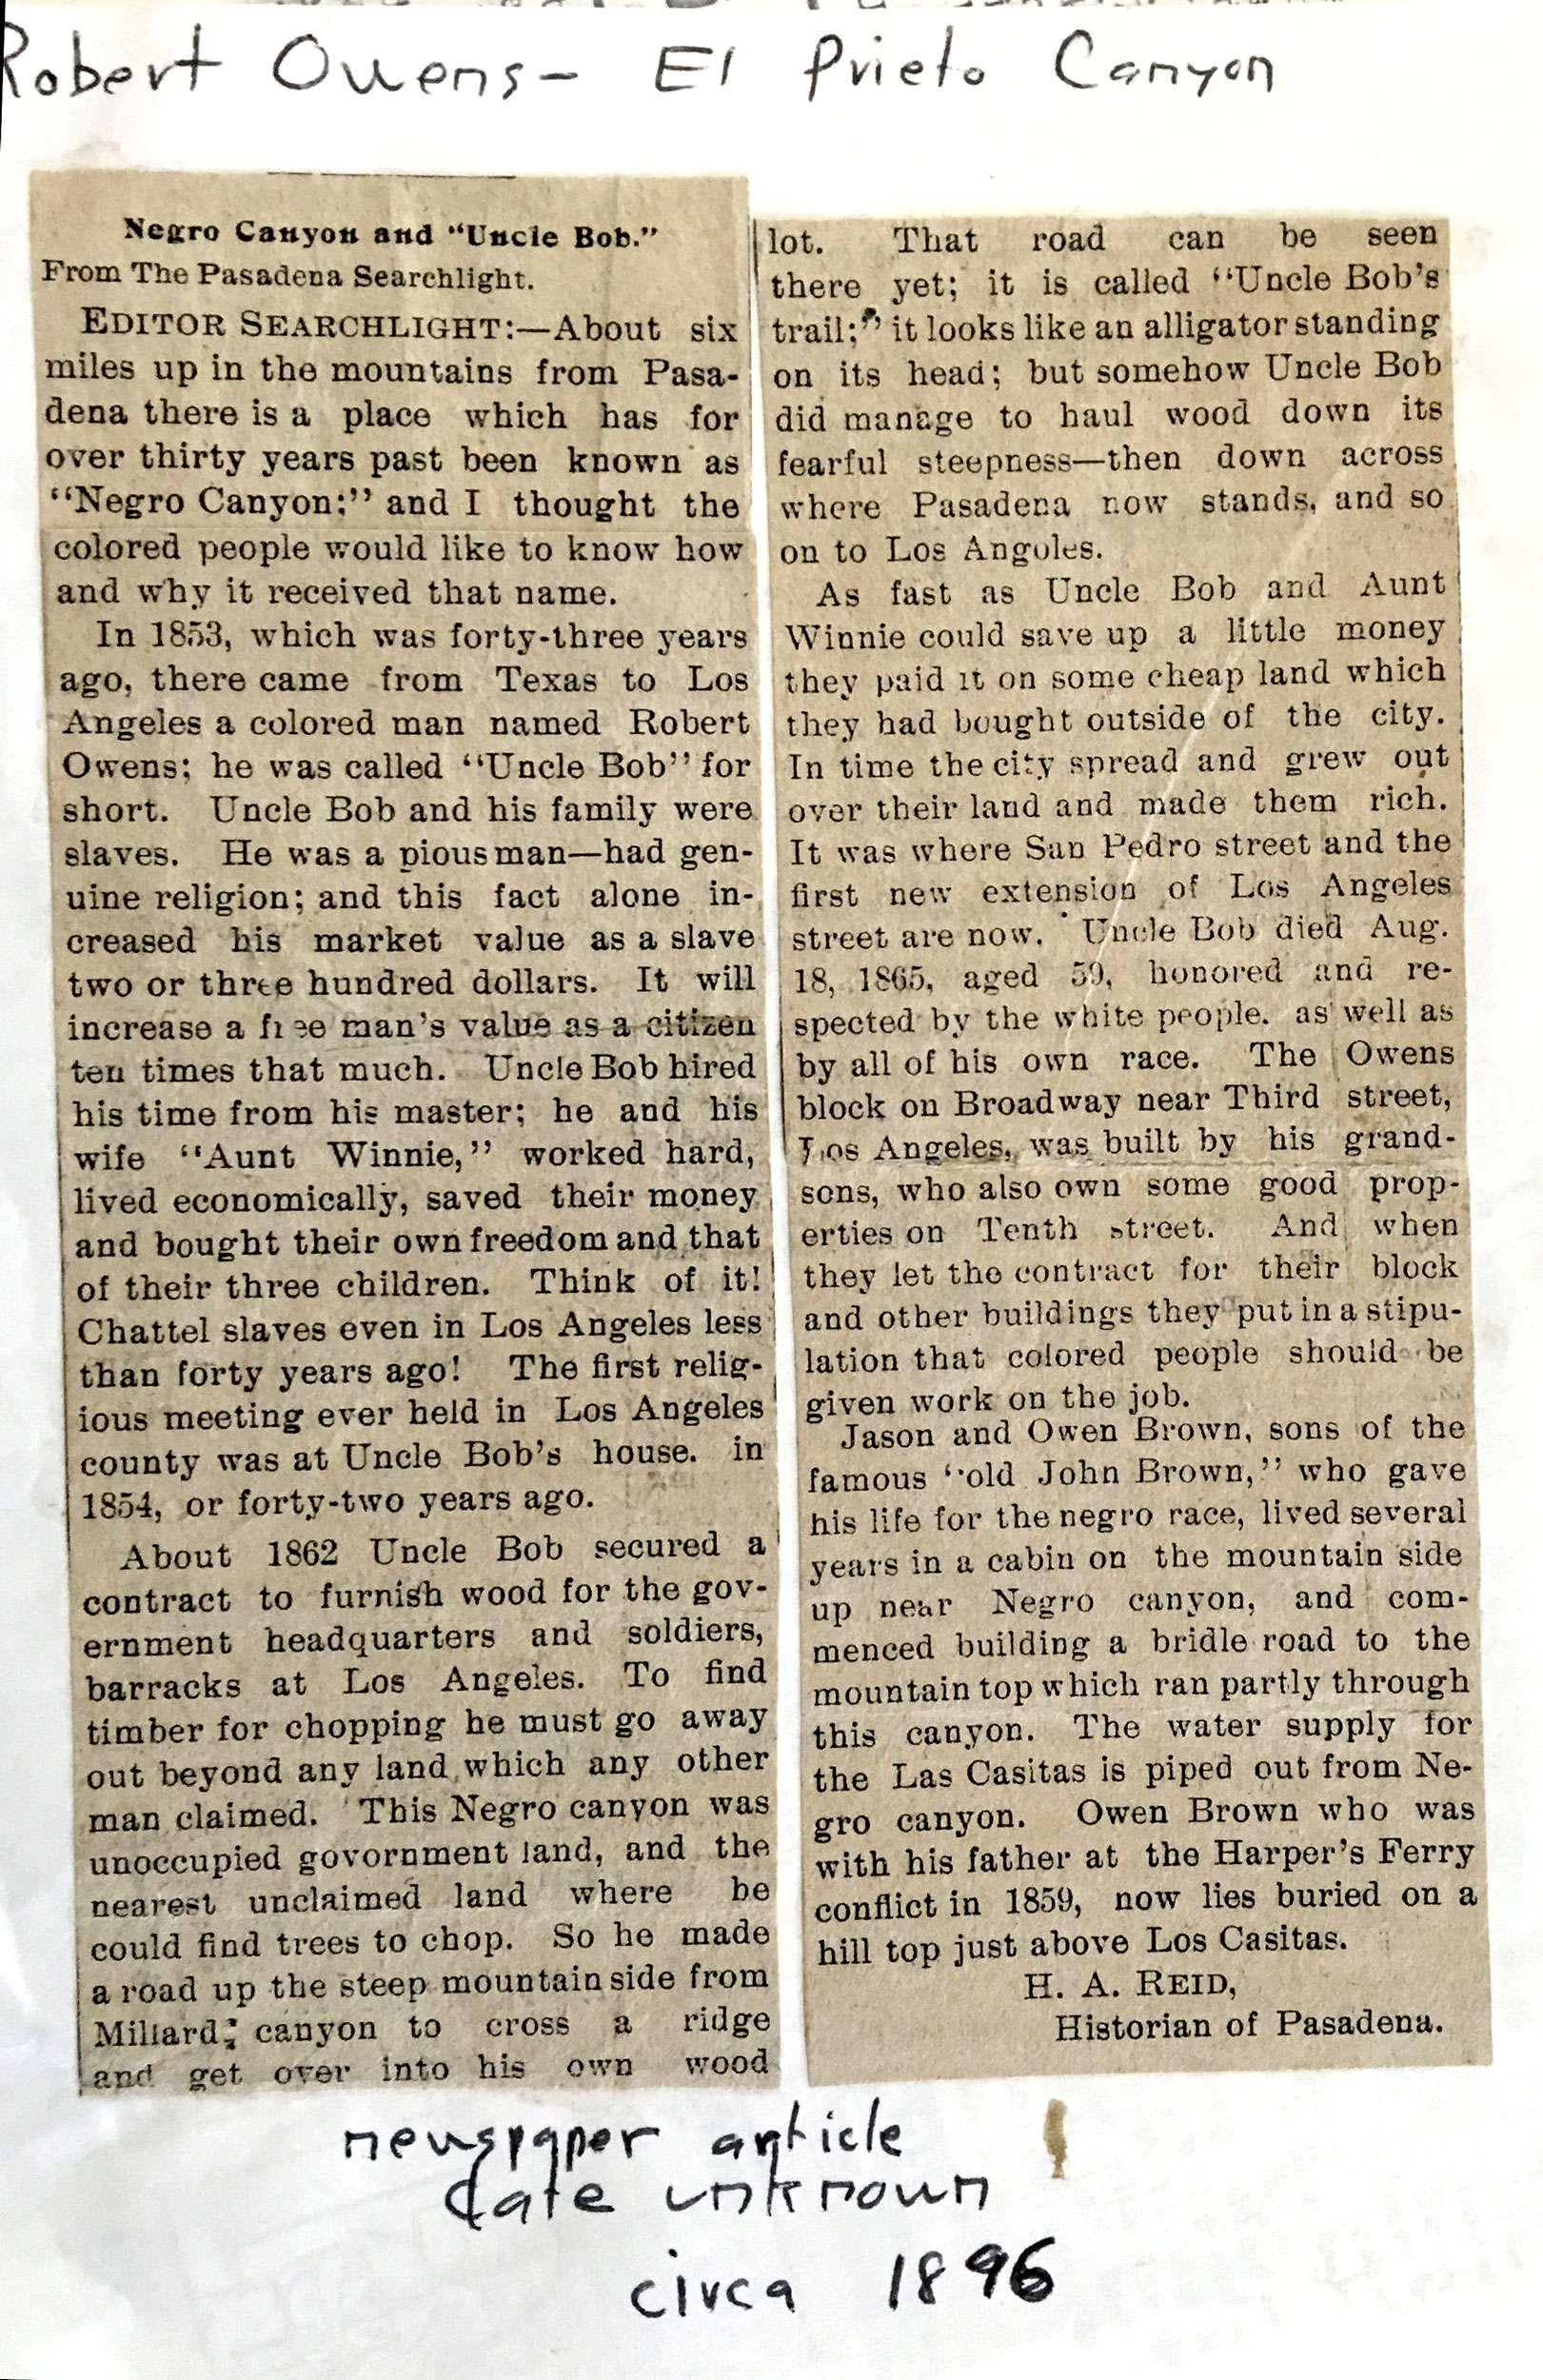 ~1896 Pasadena Searchlight article, from the USC Library John Robinson Collection via Paul Ayers